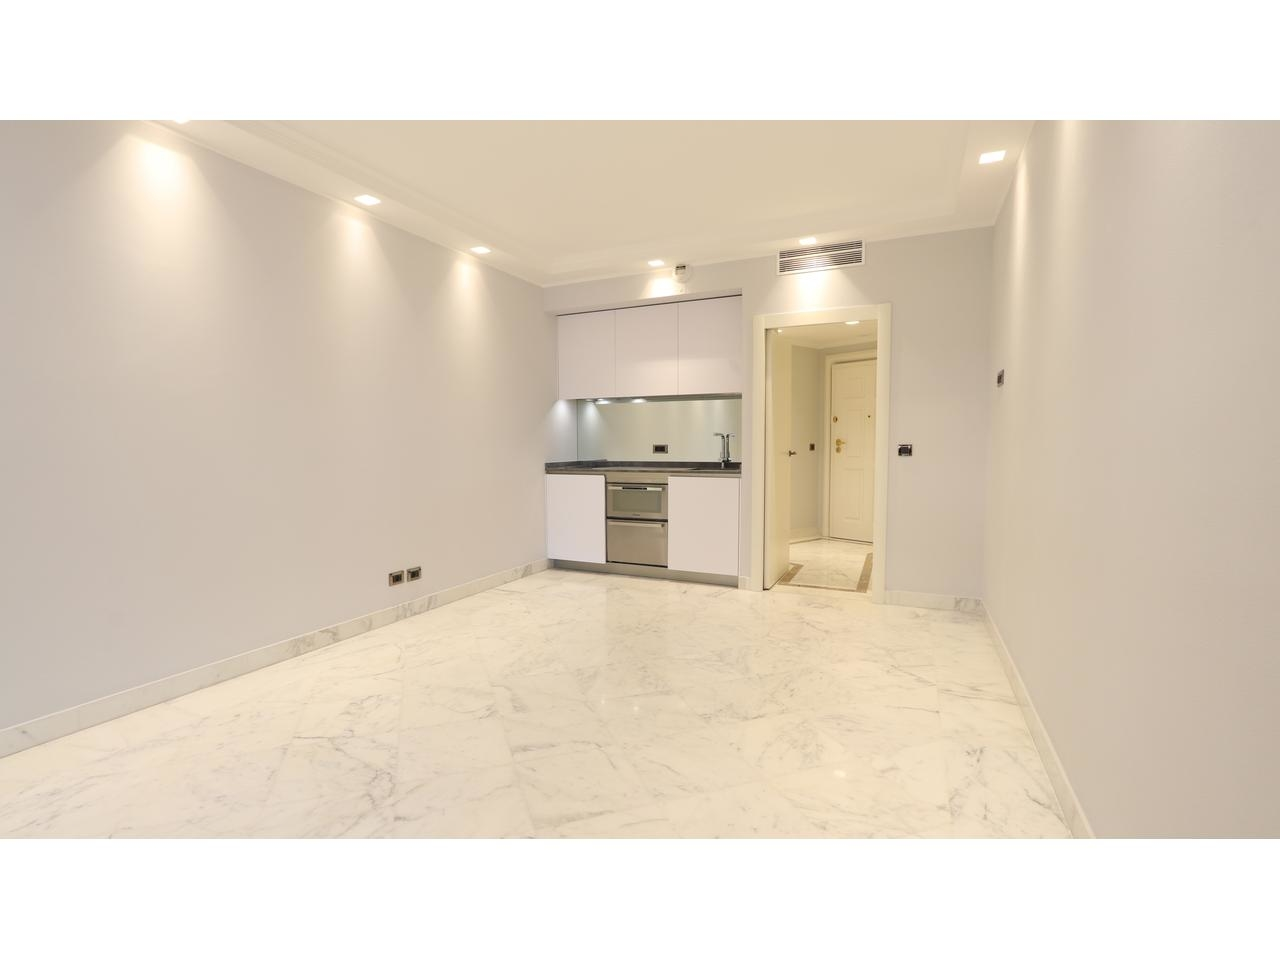 Large renovated studio in luxury building - Offices for sale in Monaco